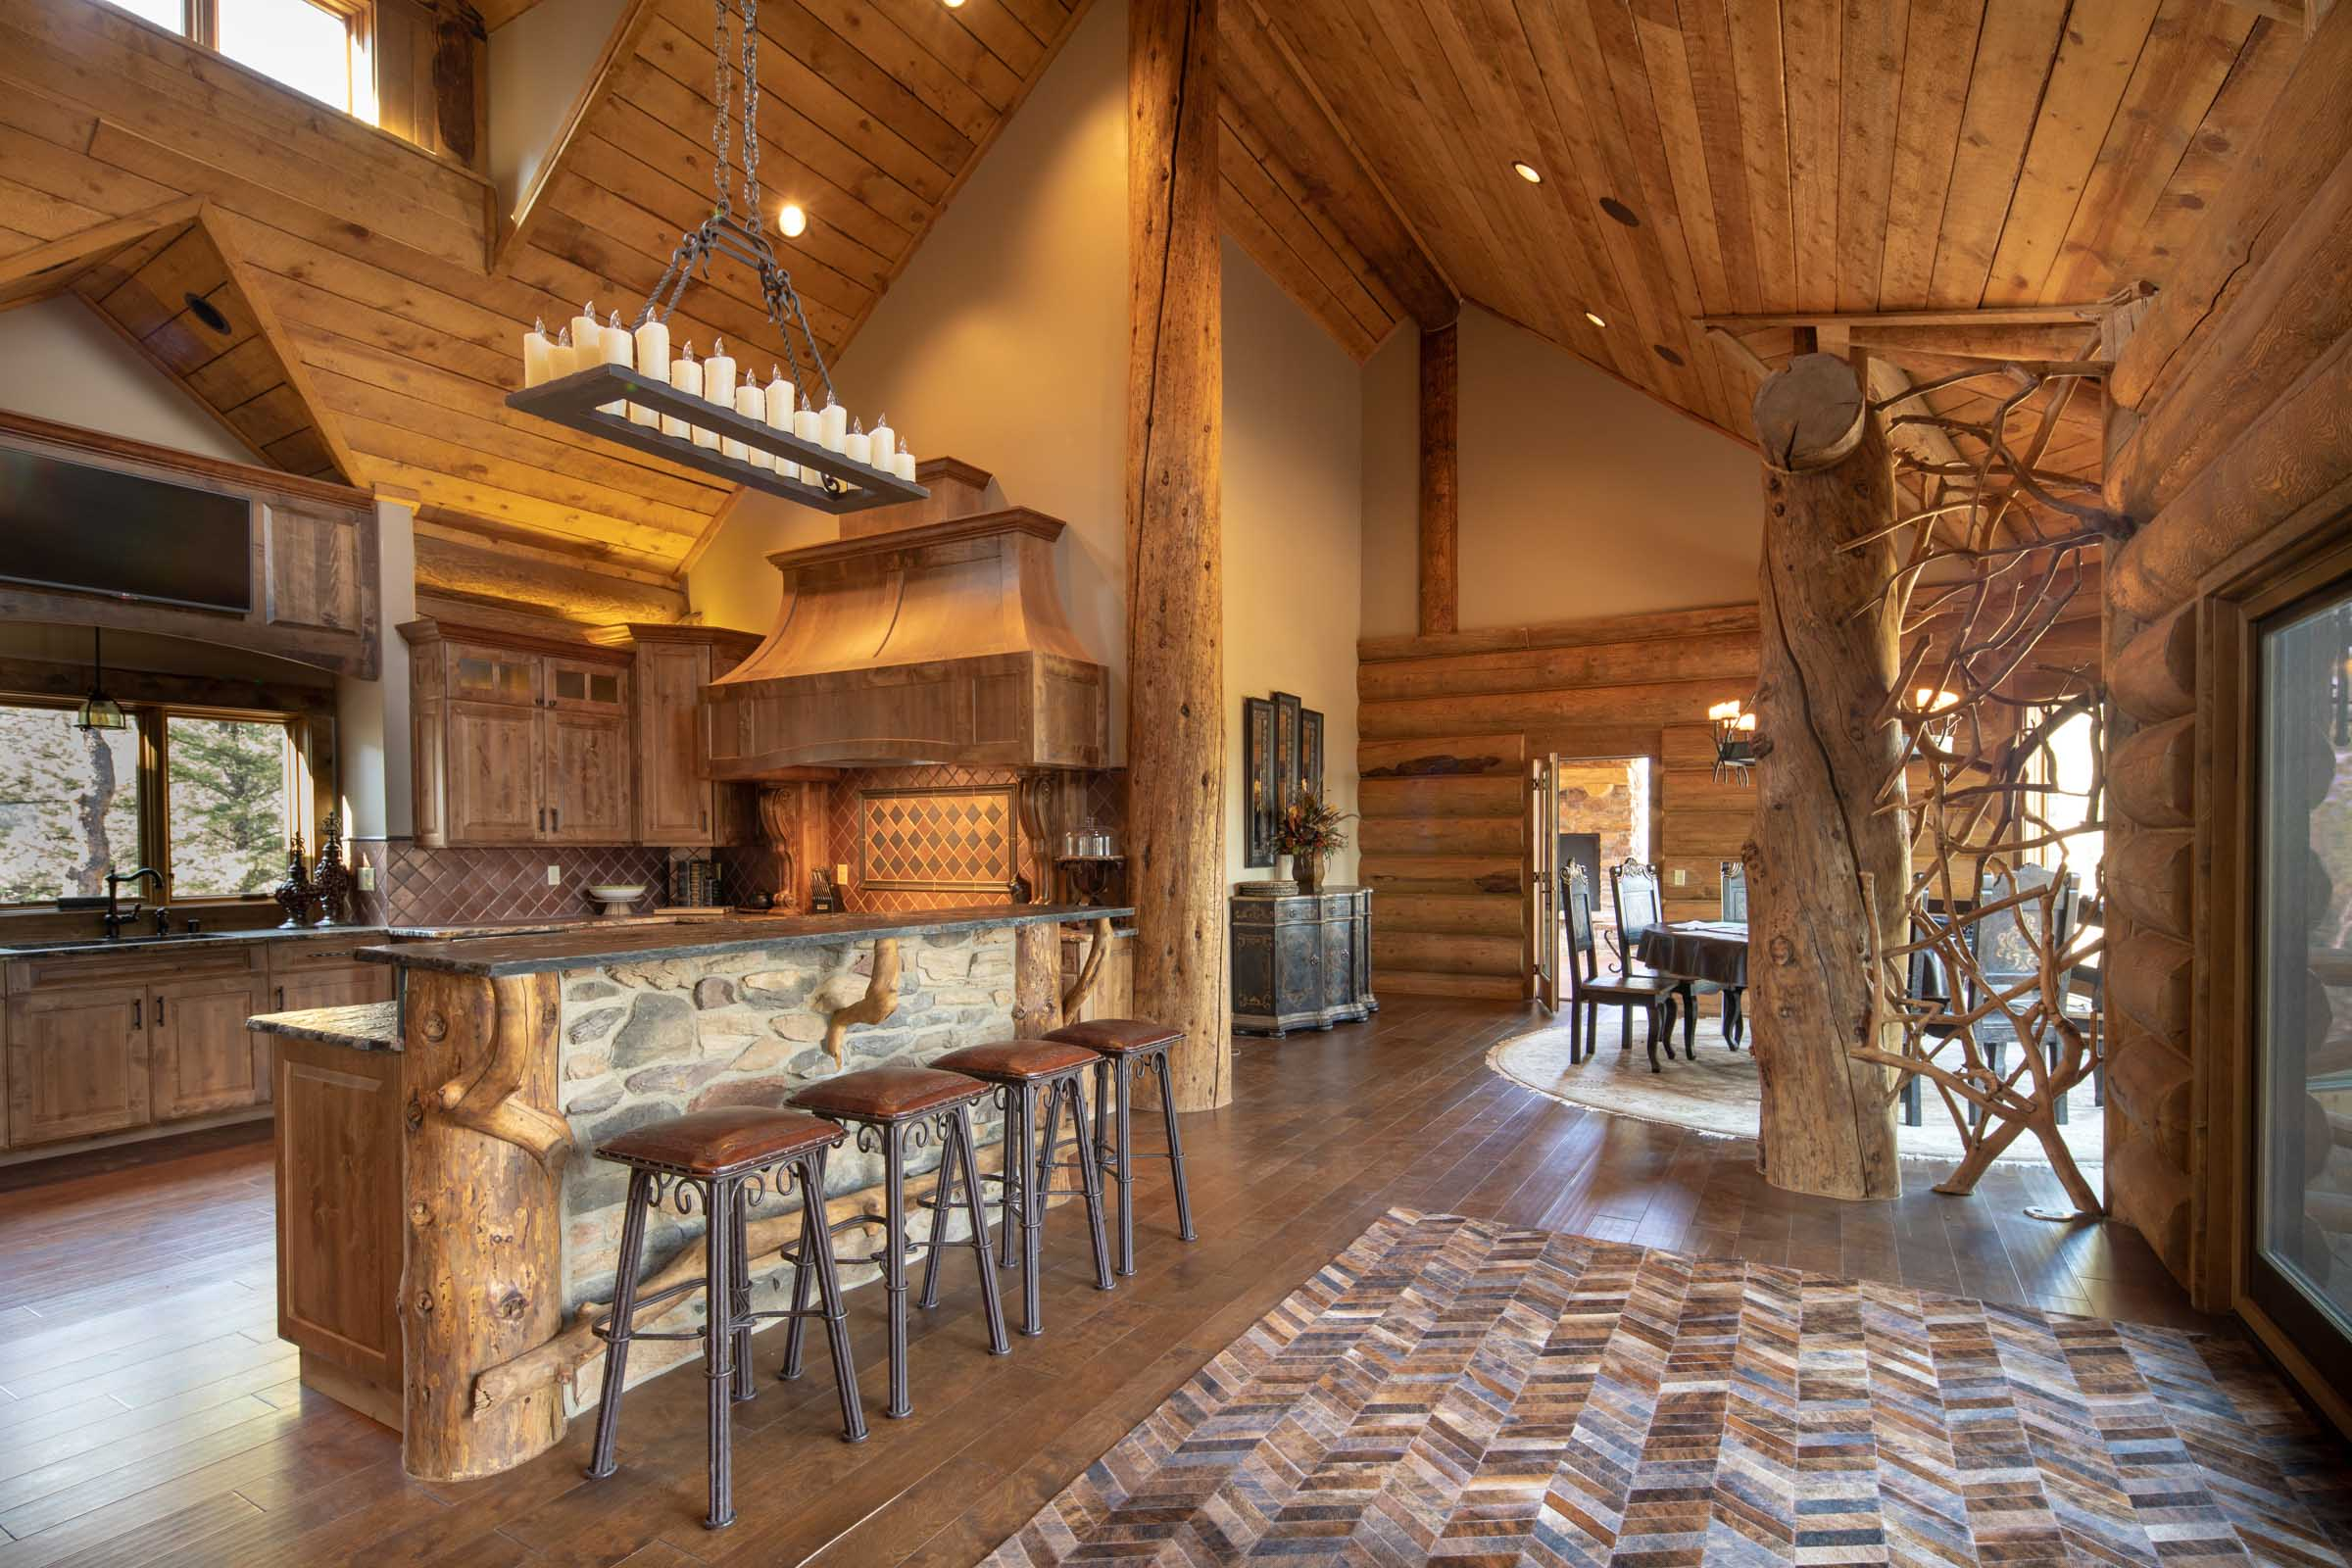 Luxury log cabin angel fire new mexico-30